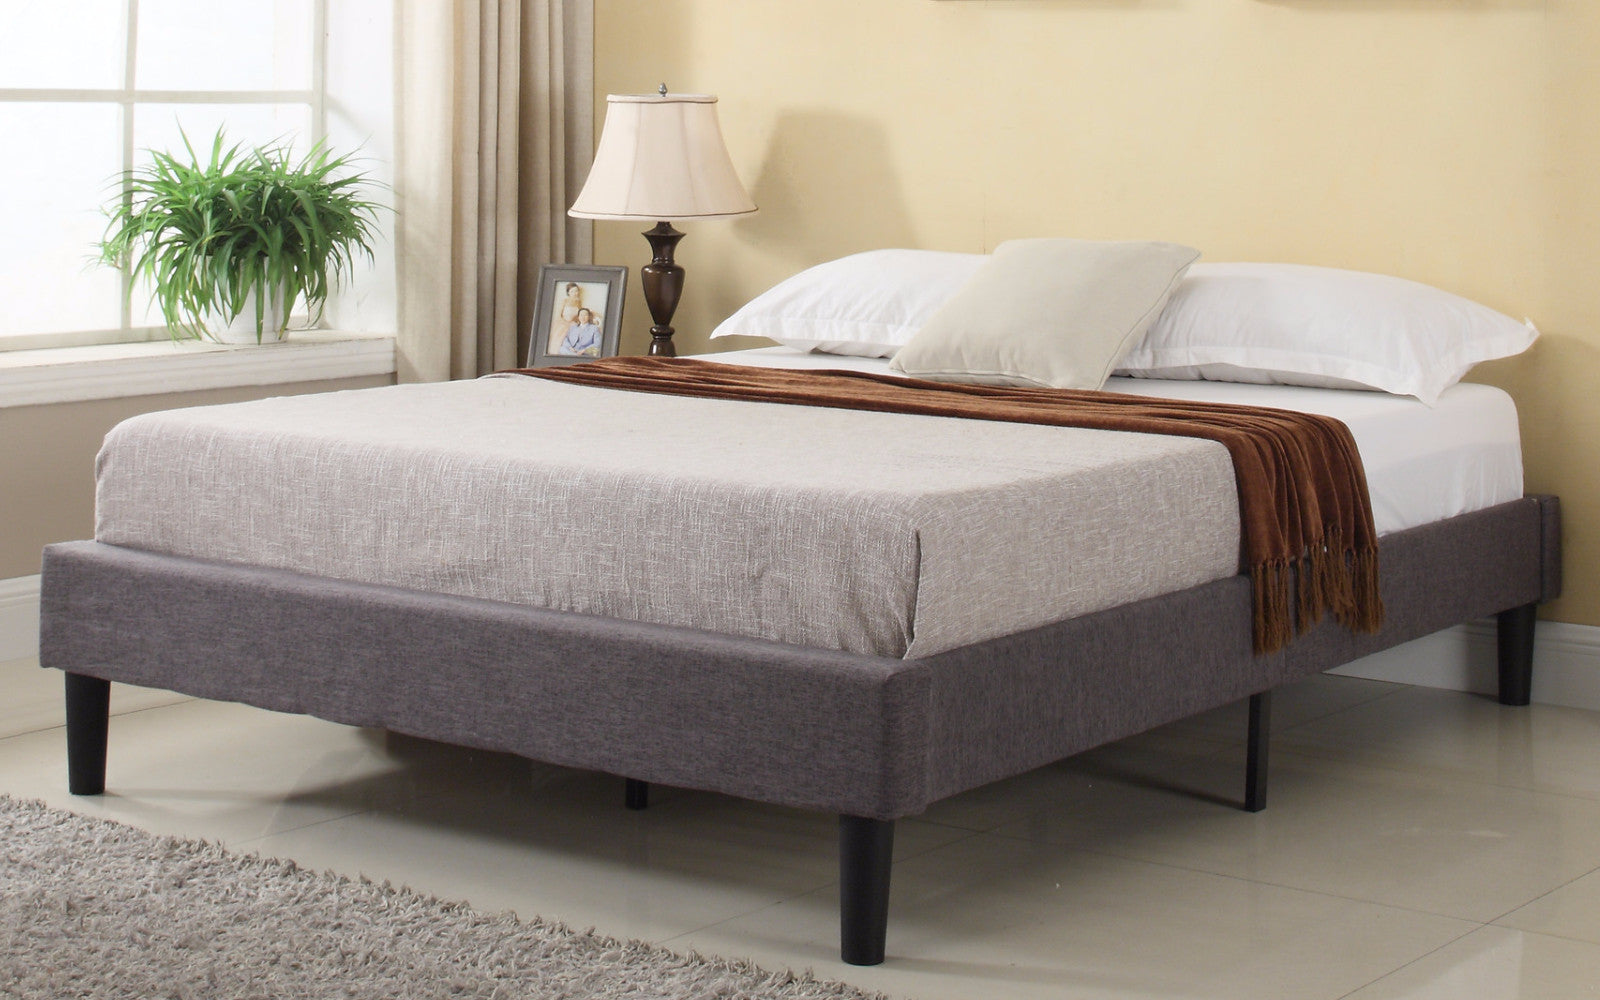 Cape Modern Fabric Bed Frame with Slats | Sofamania.com